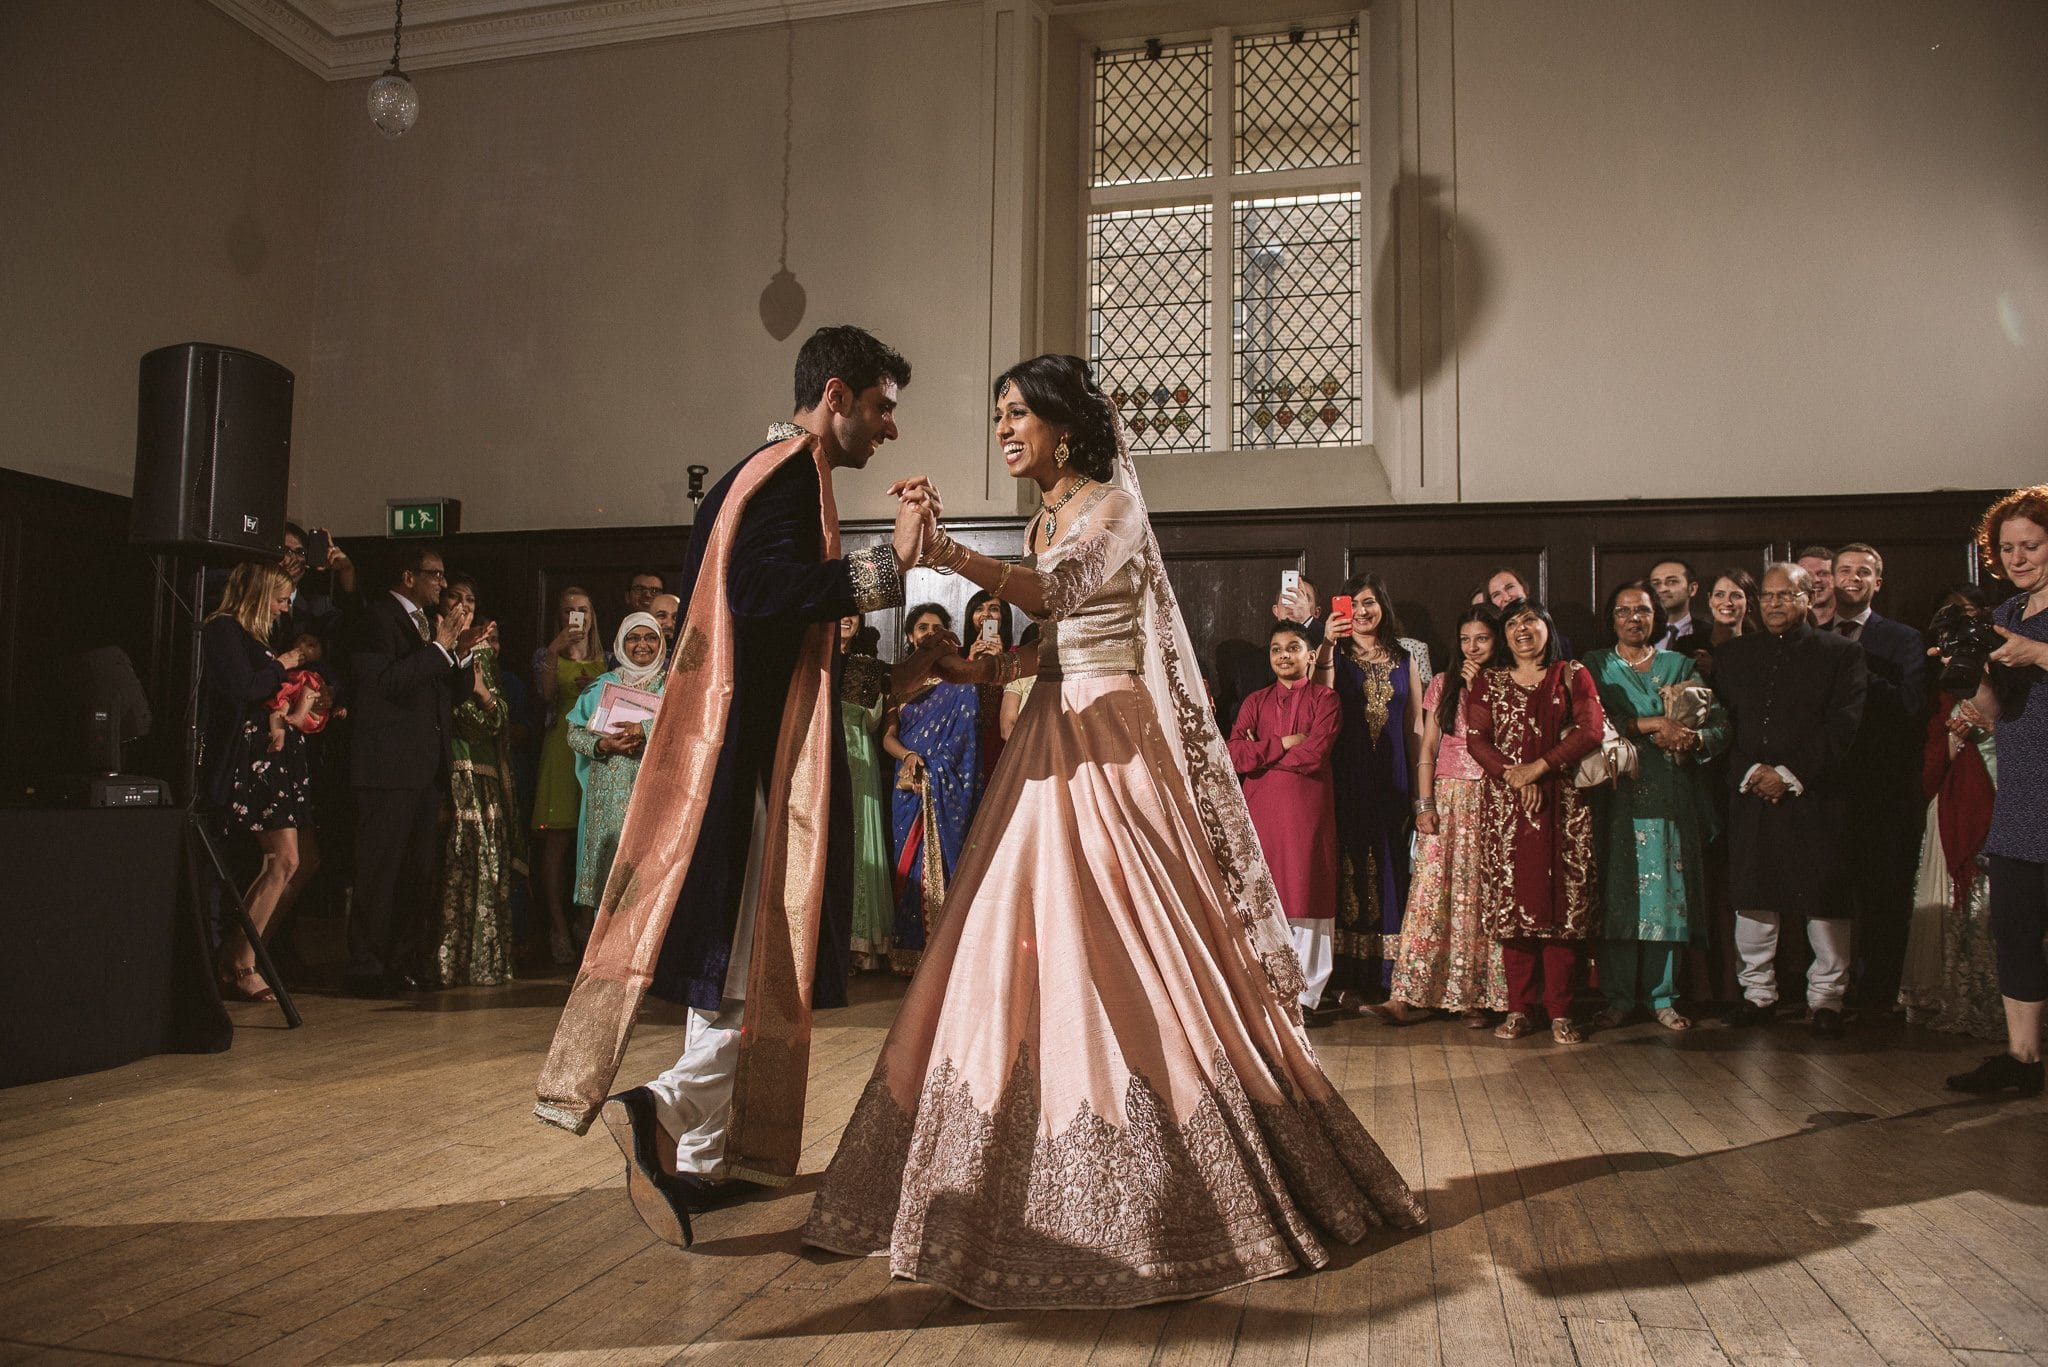 Sorayya and Usman take to the floor for their first dance at Fulham Palace